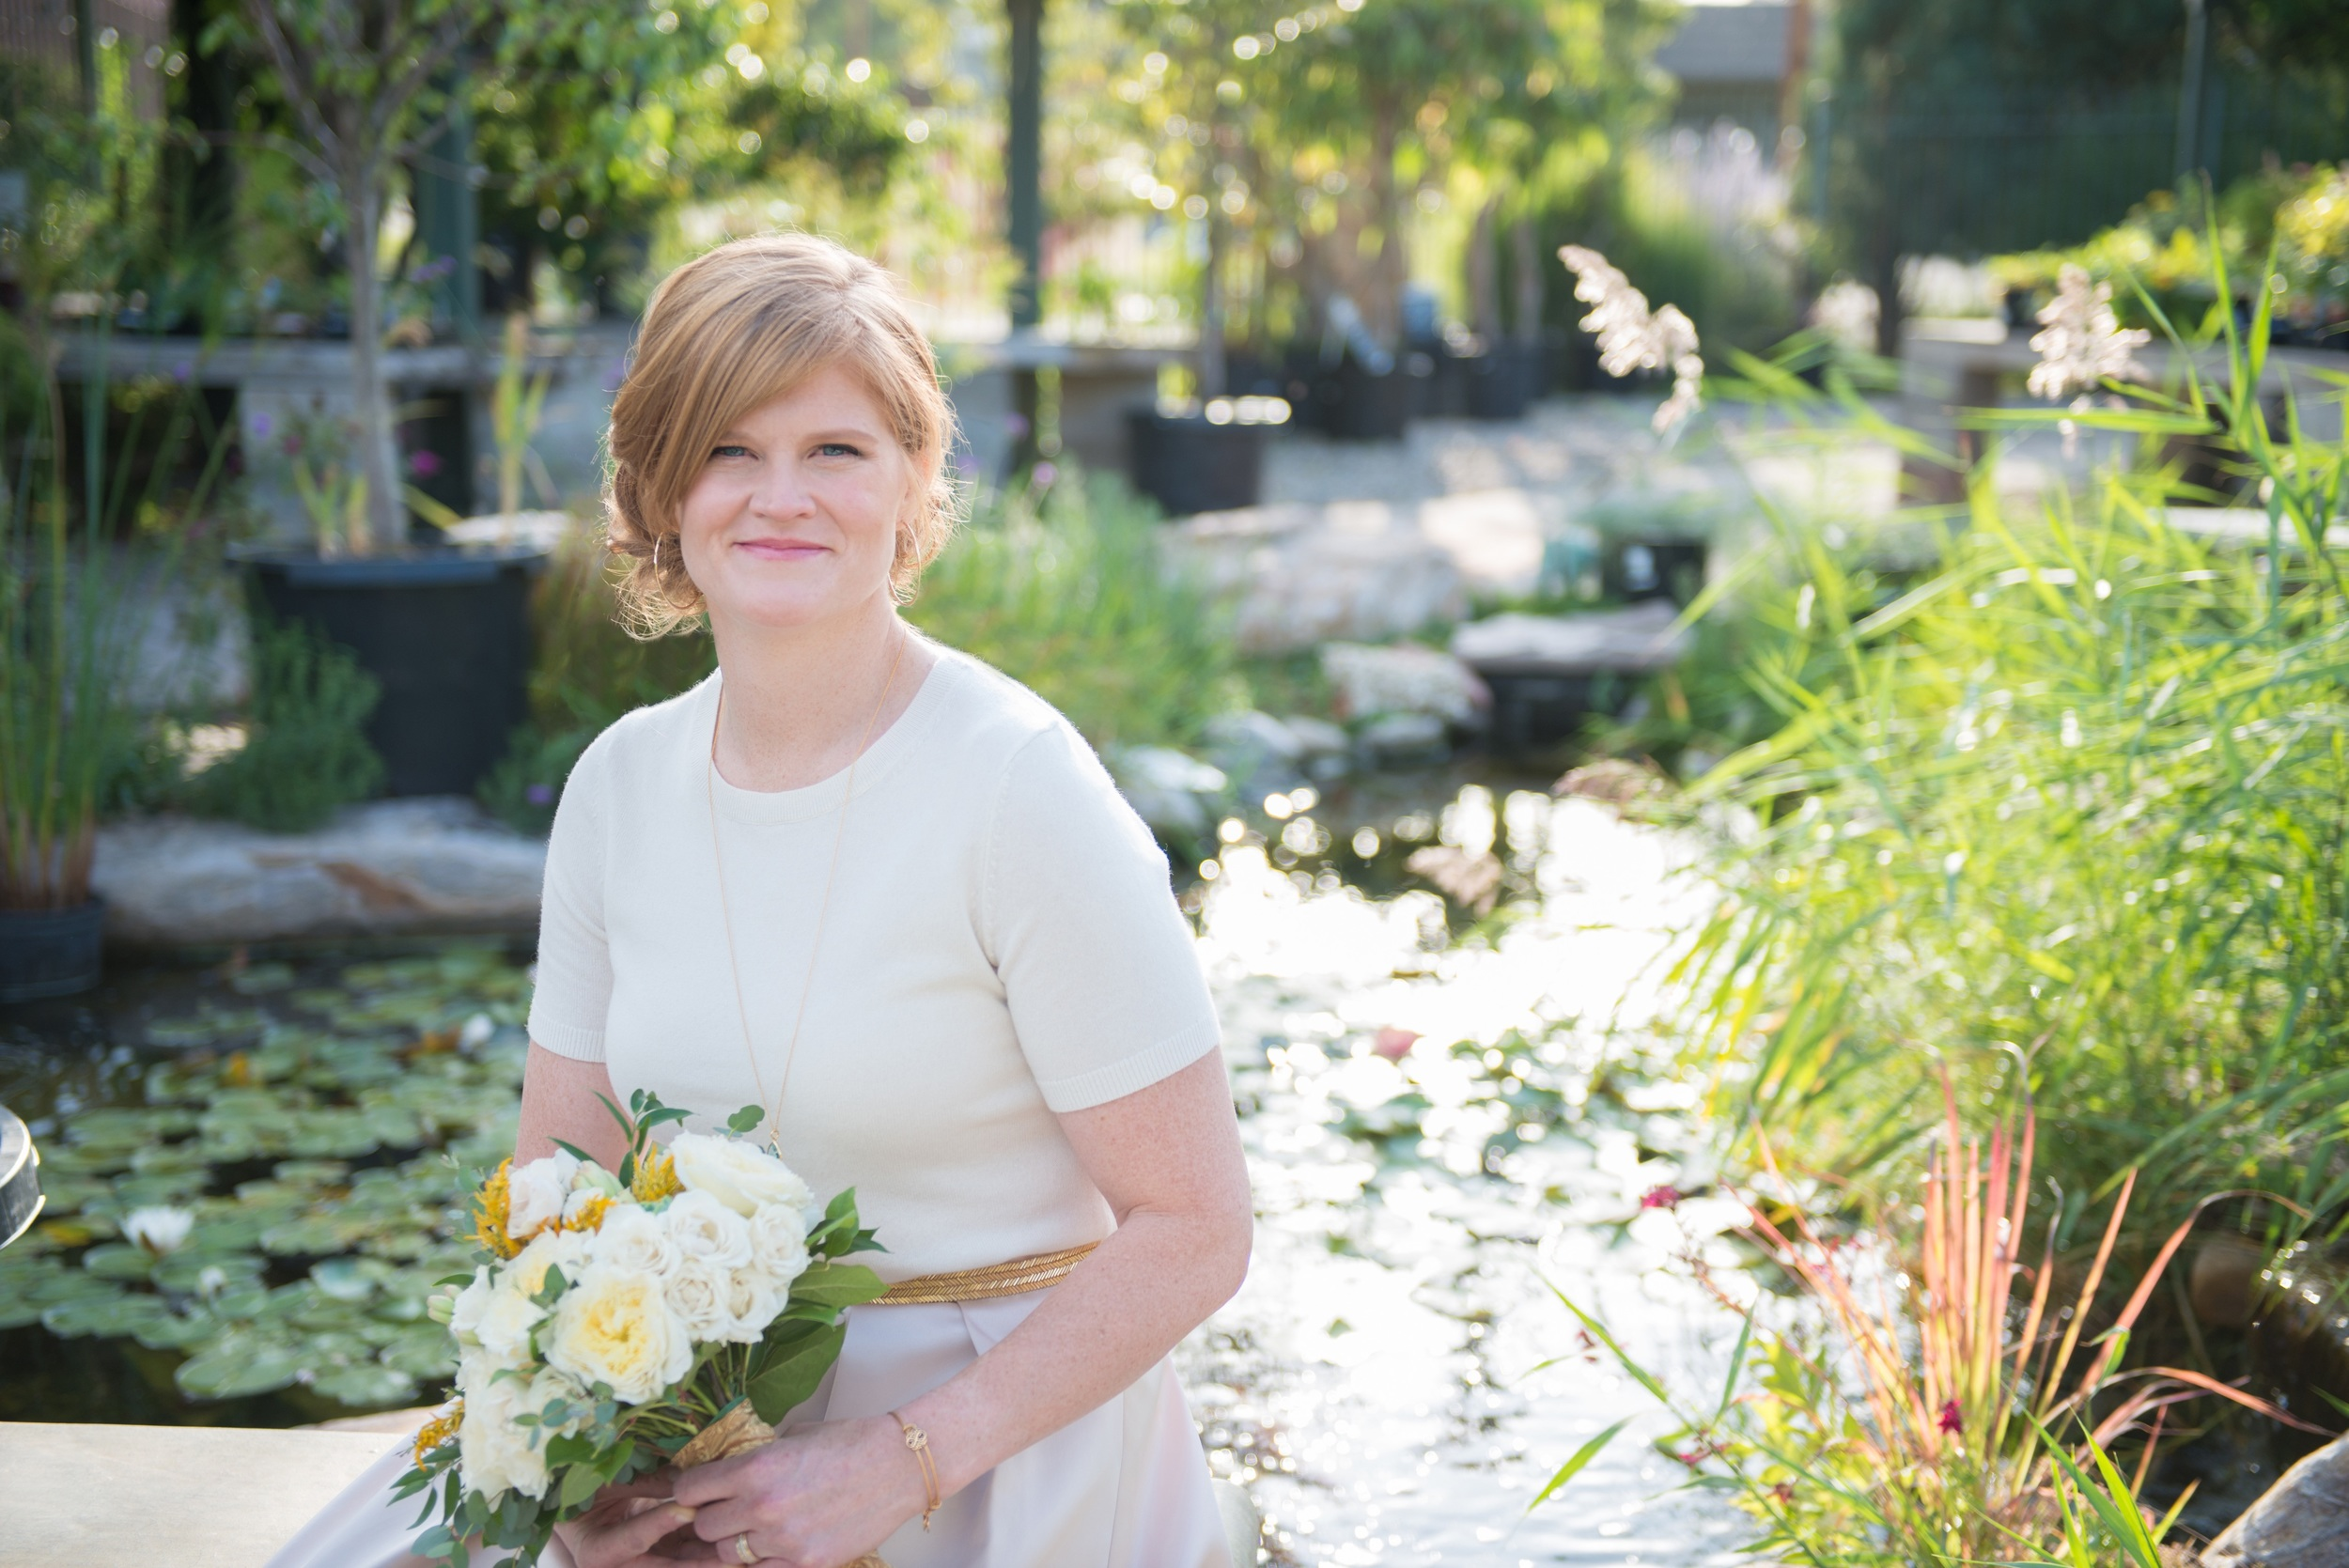 Adrienne and Brad Johnson took amazing Fall wedding photos in our outdoor garden at our Salt Lake location....